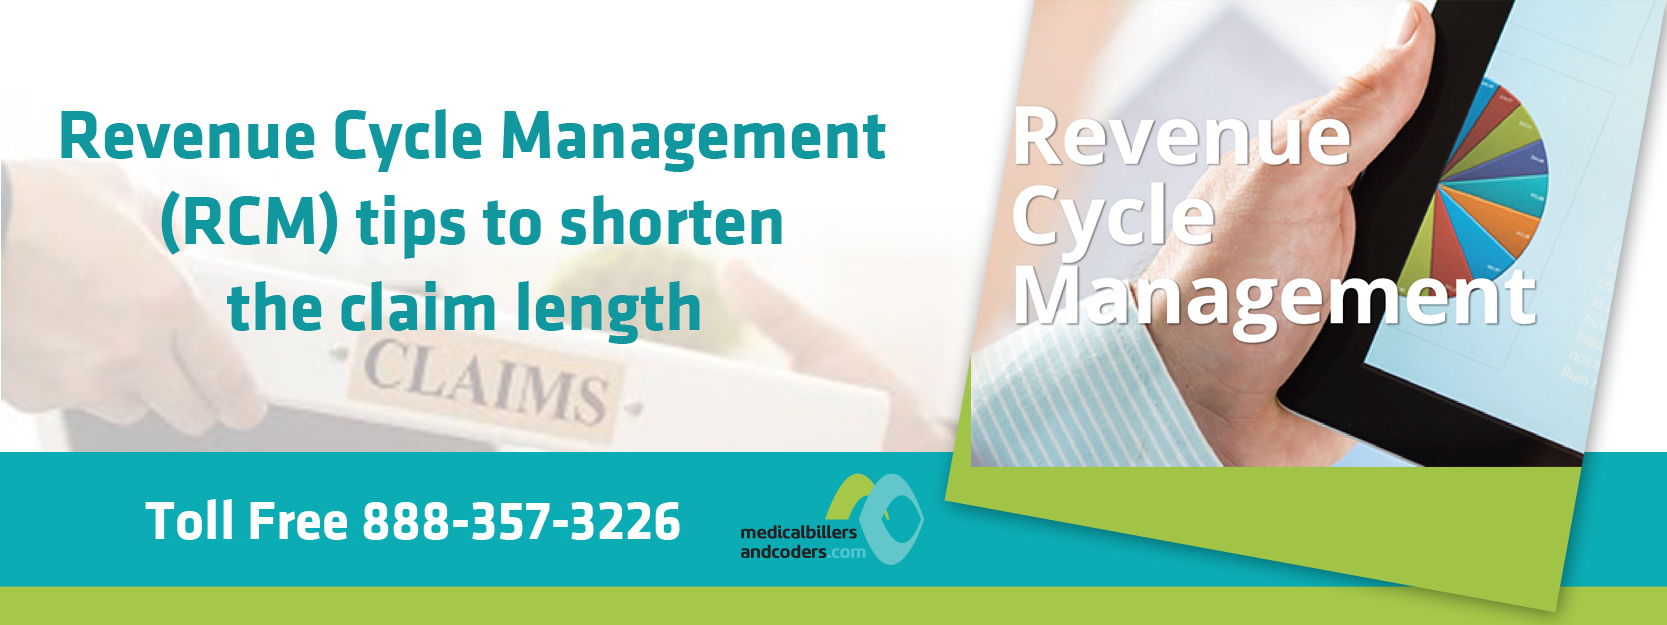 Revenue Cycle Management (RCM) Tips To Shorten The Claim Length